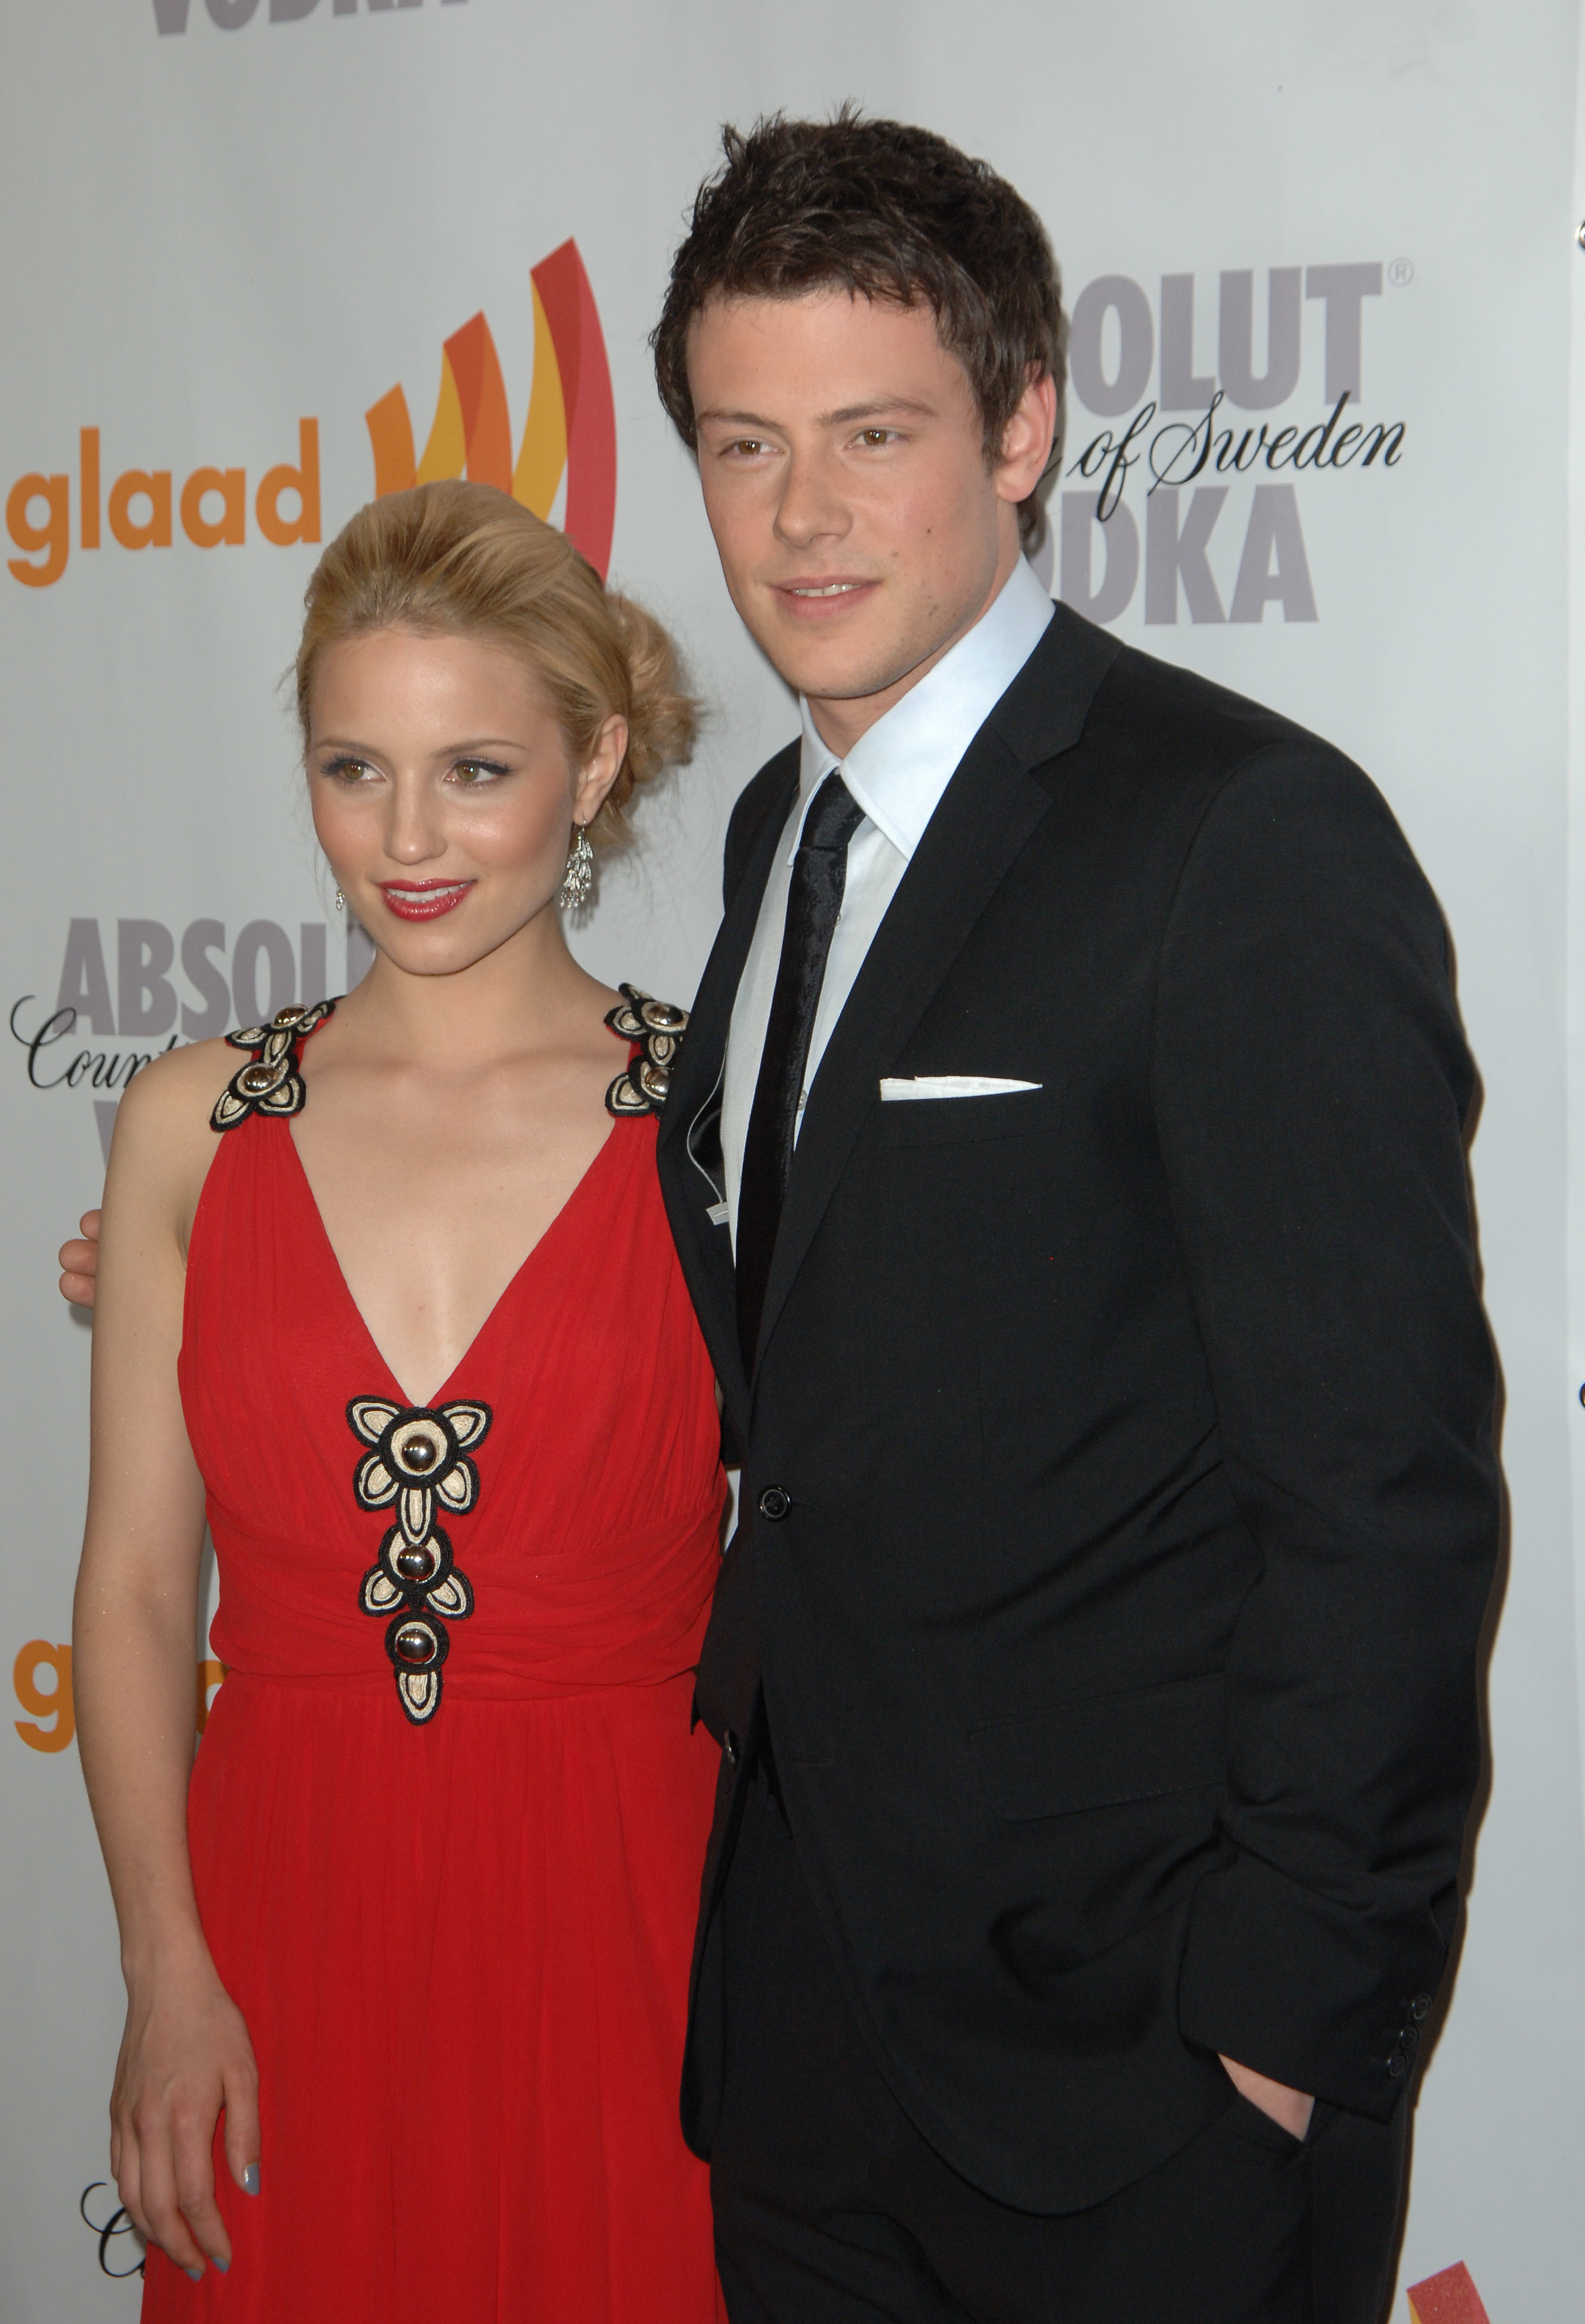 dianna agron cory monteith's death doesn't seem real